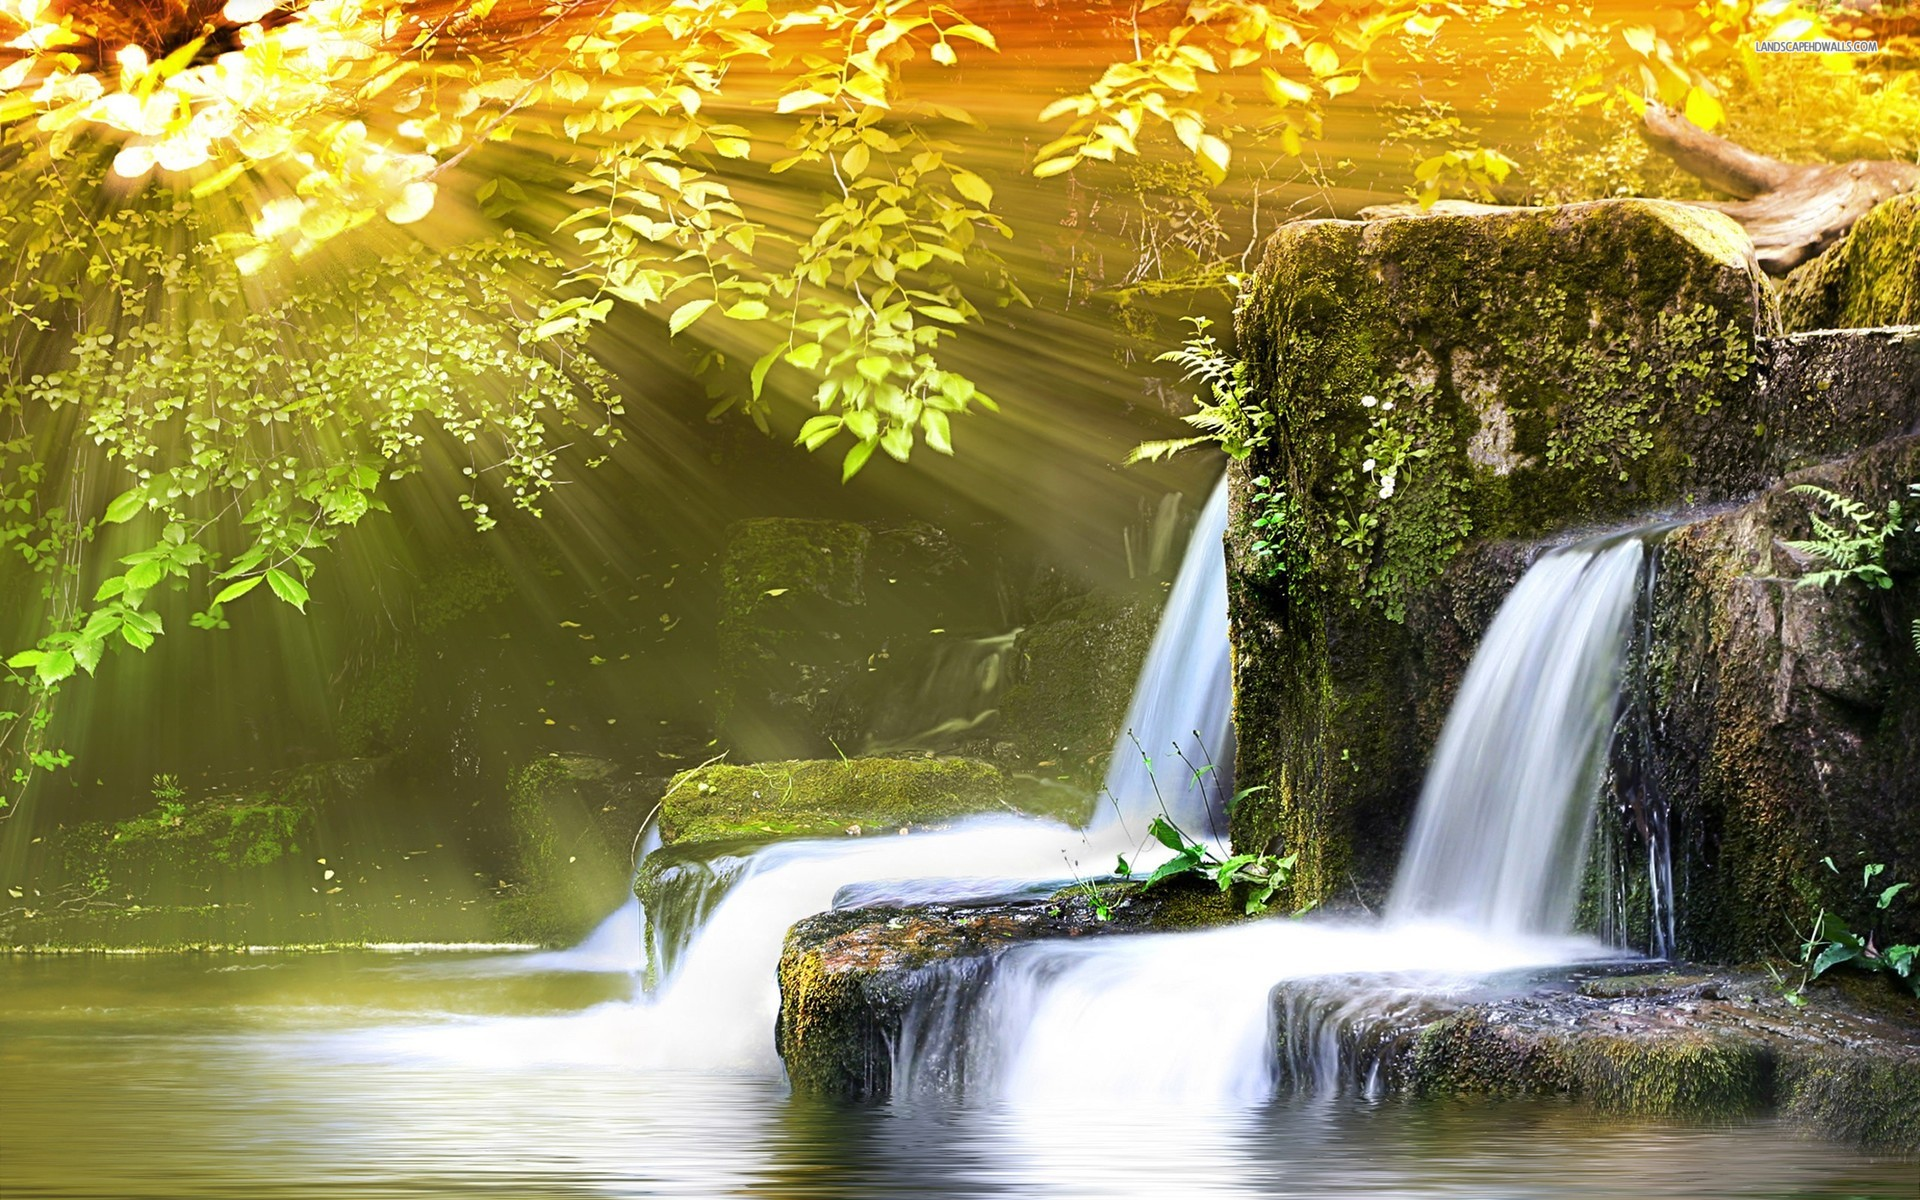 Gambar Lukisan Air Terjun Indah Wallpaper Cantik DP Wallpaper 1920x1200